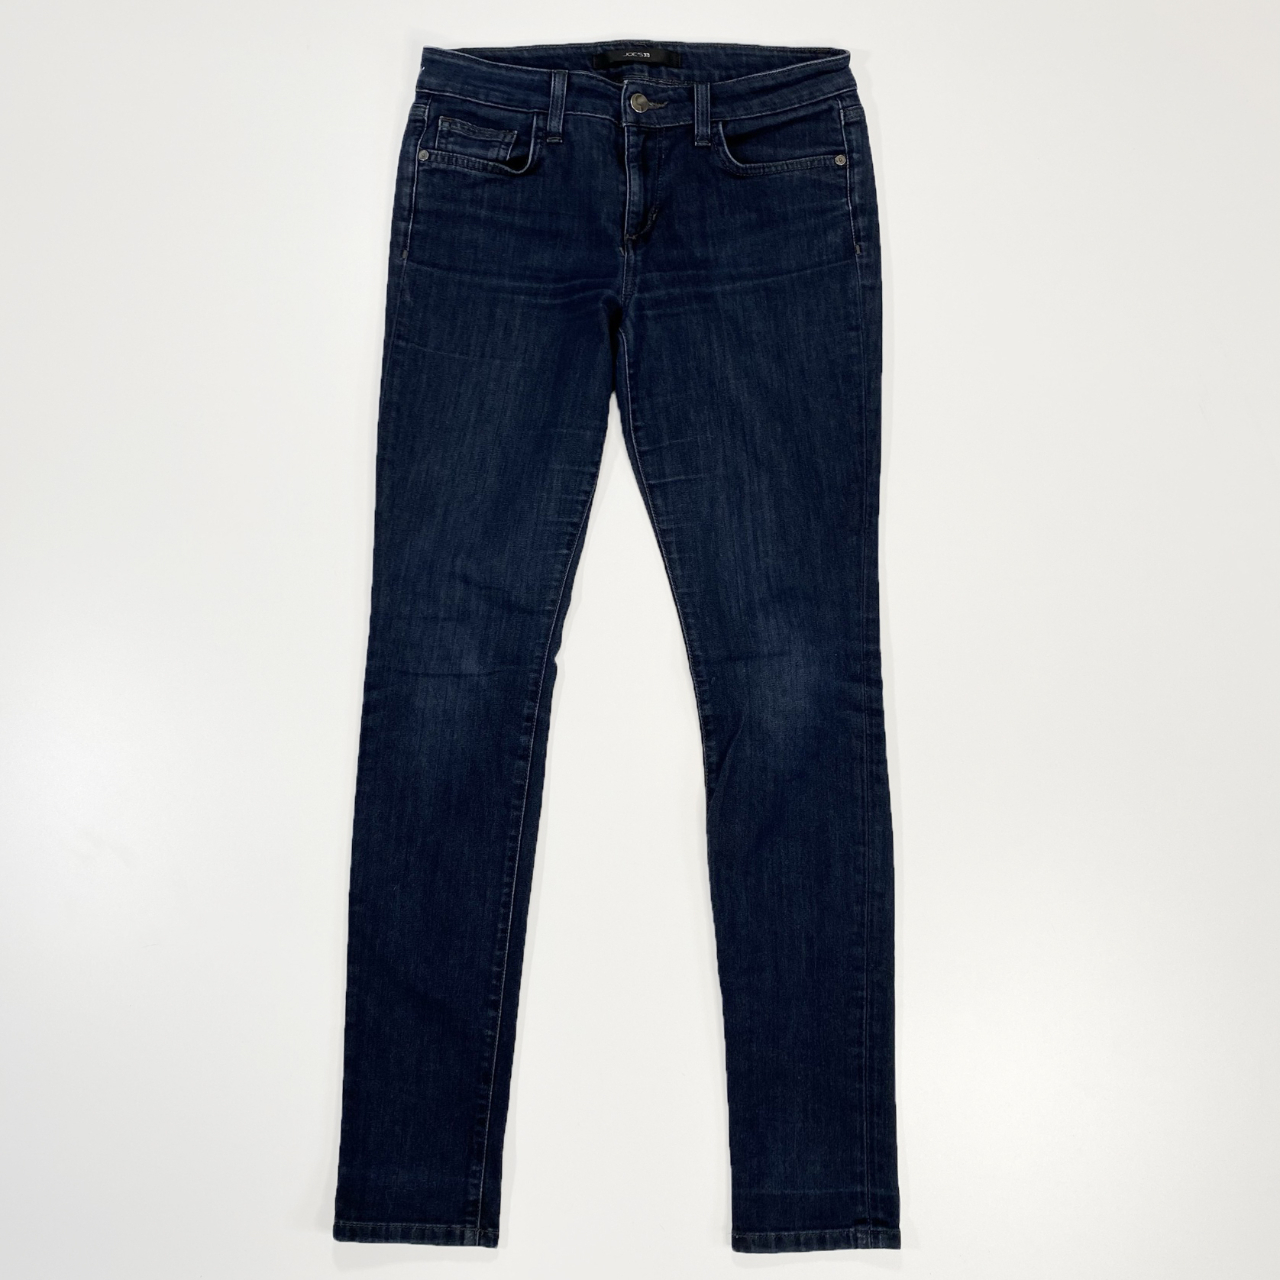 Product Image 1 - Joe's Jeans Skinny Visionaire Taylor